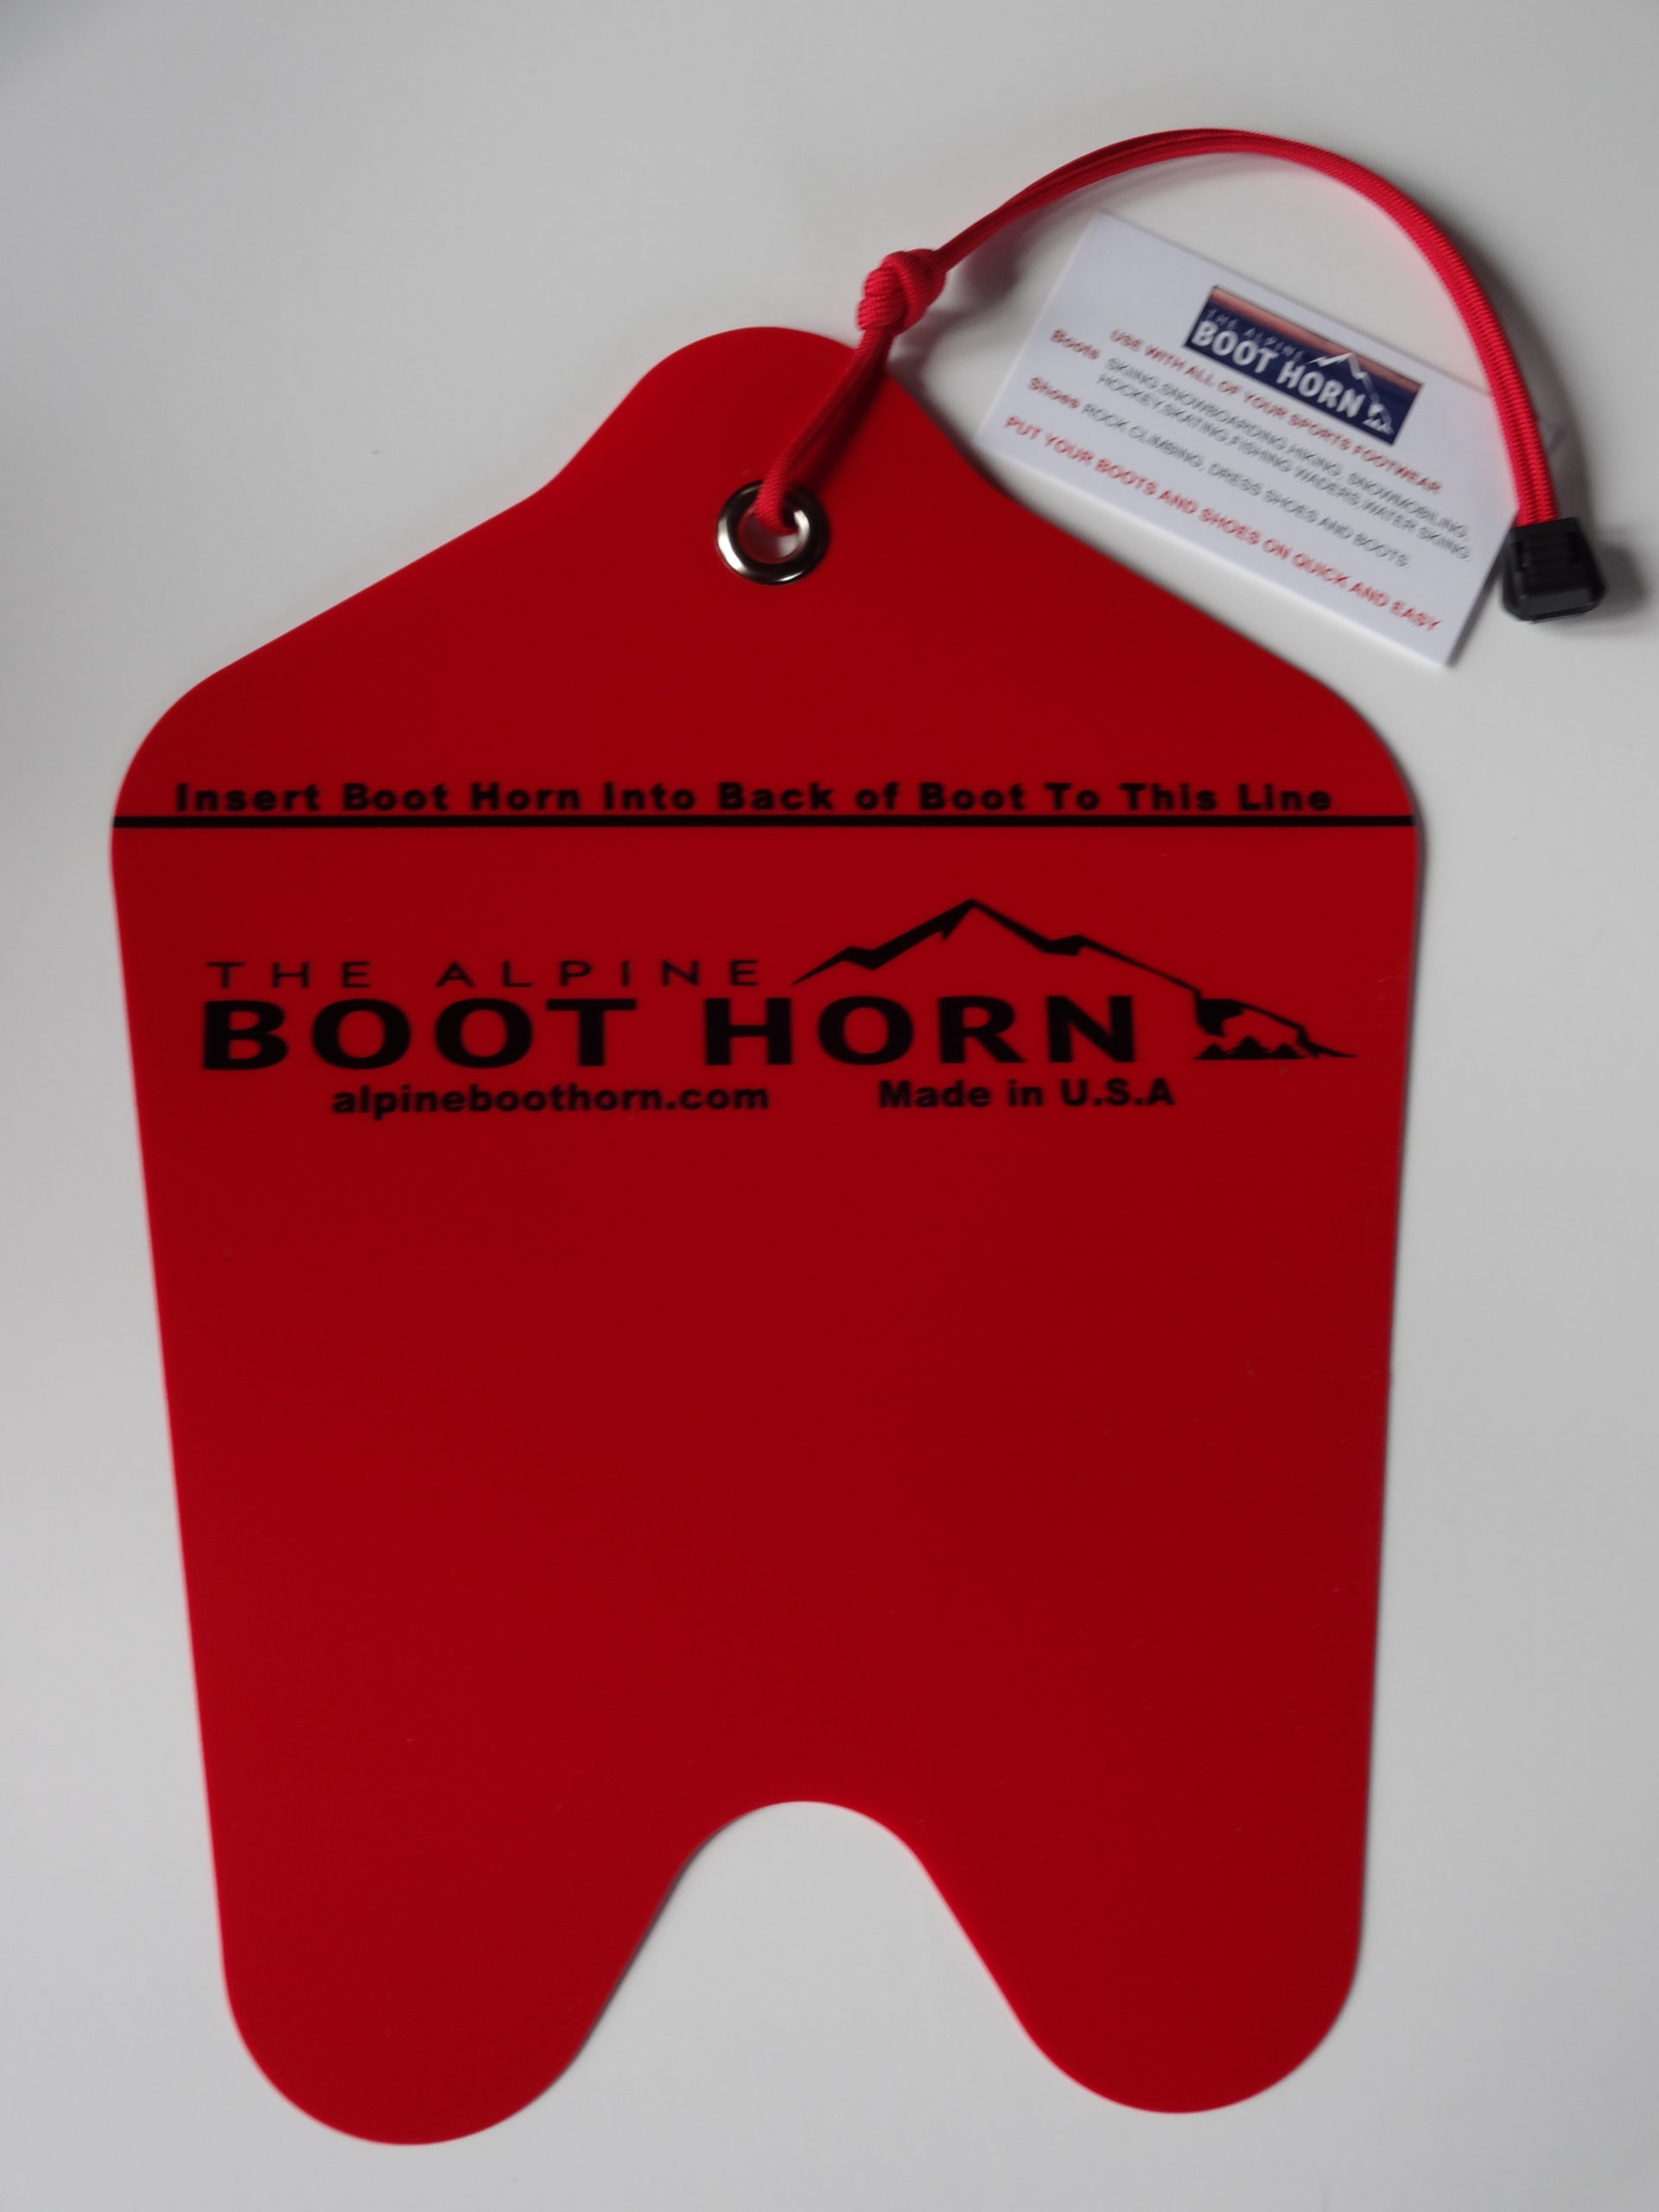 The Boot Horn